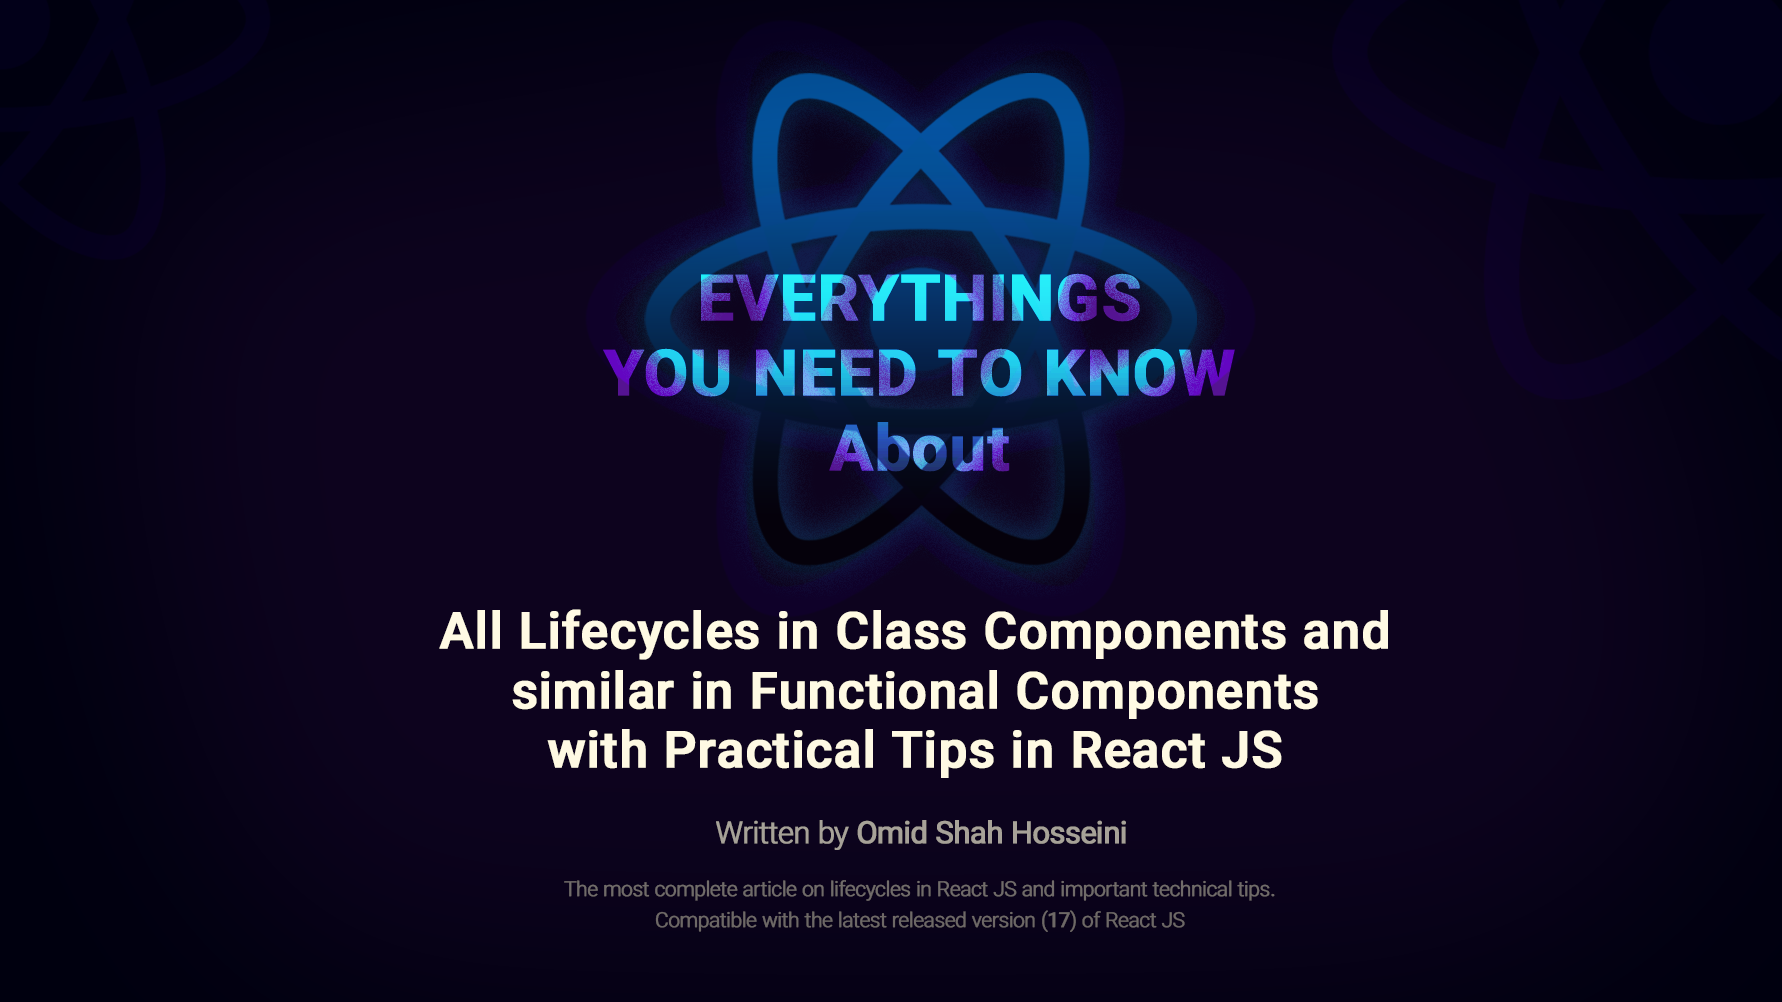 all lifecycle methods in class components and functional components in react js